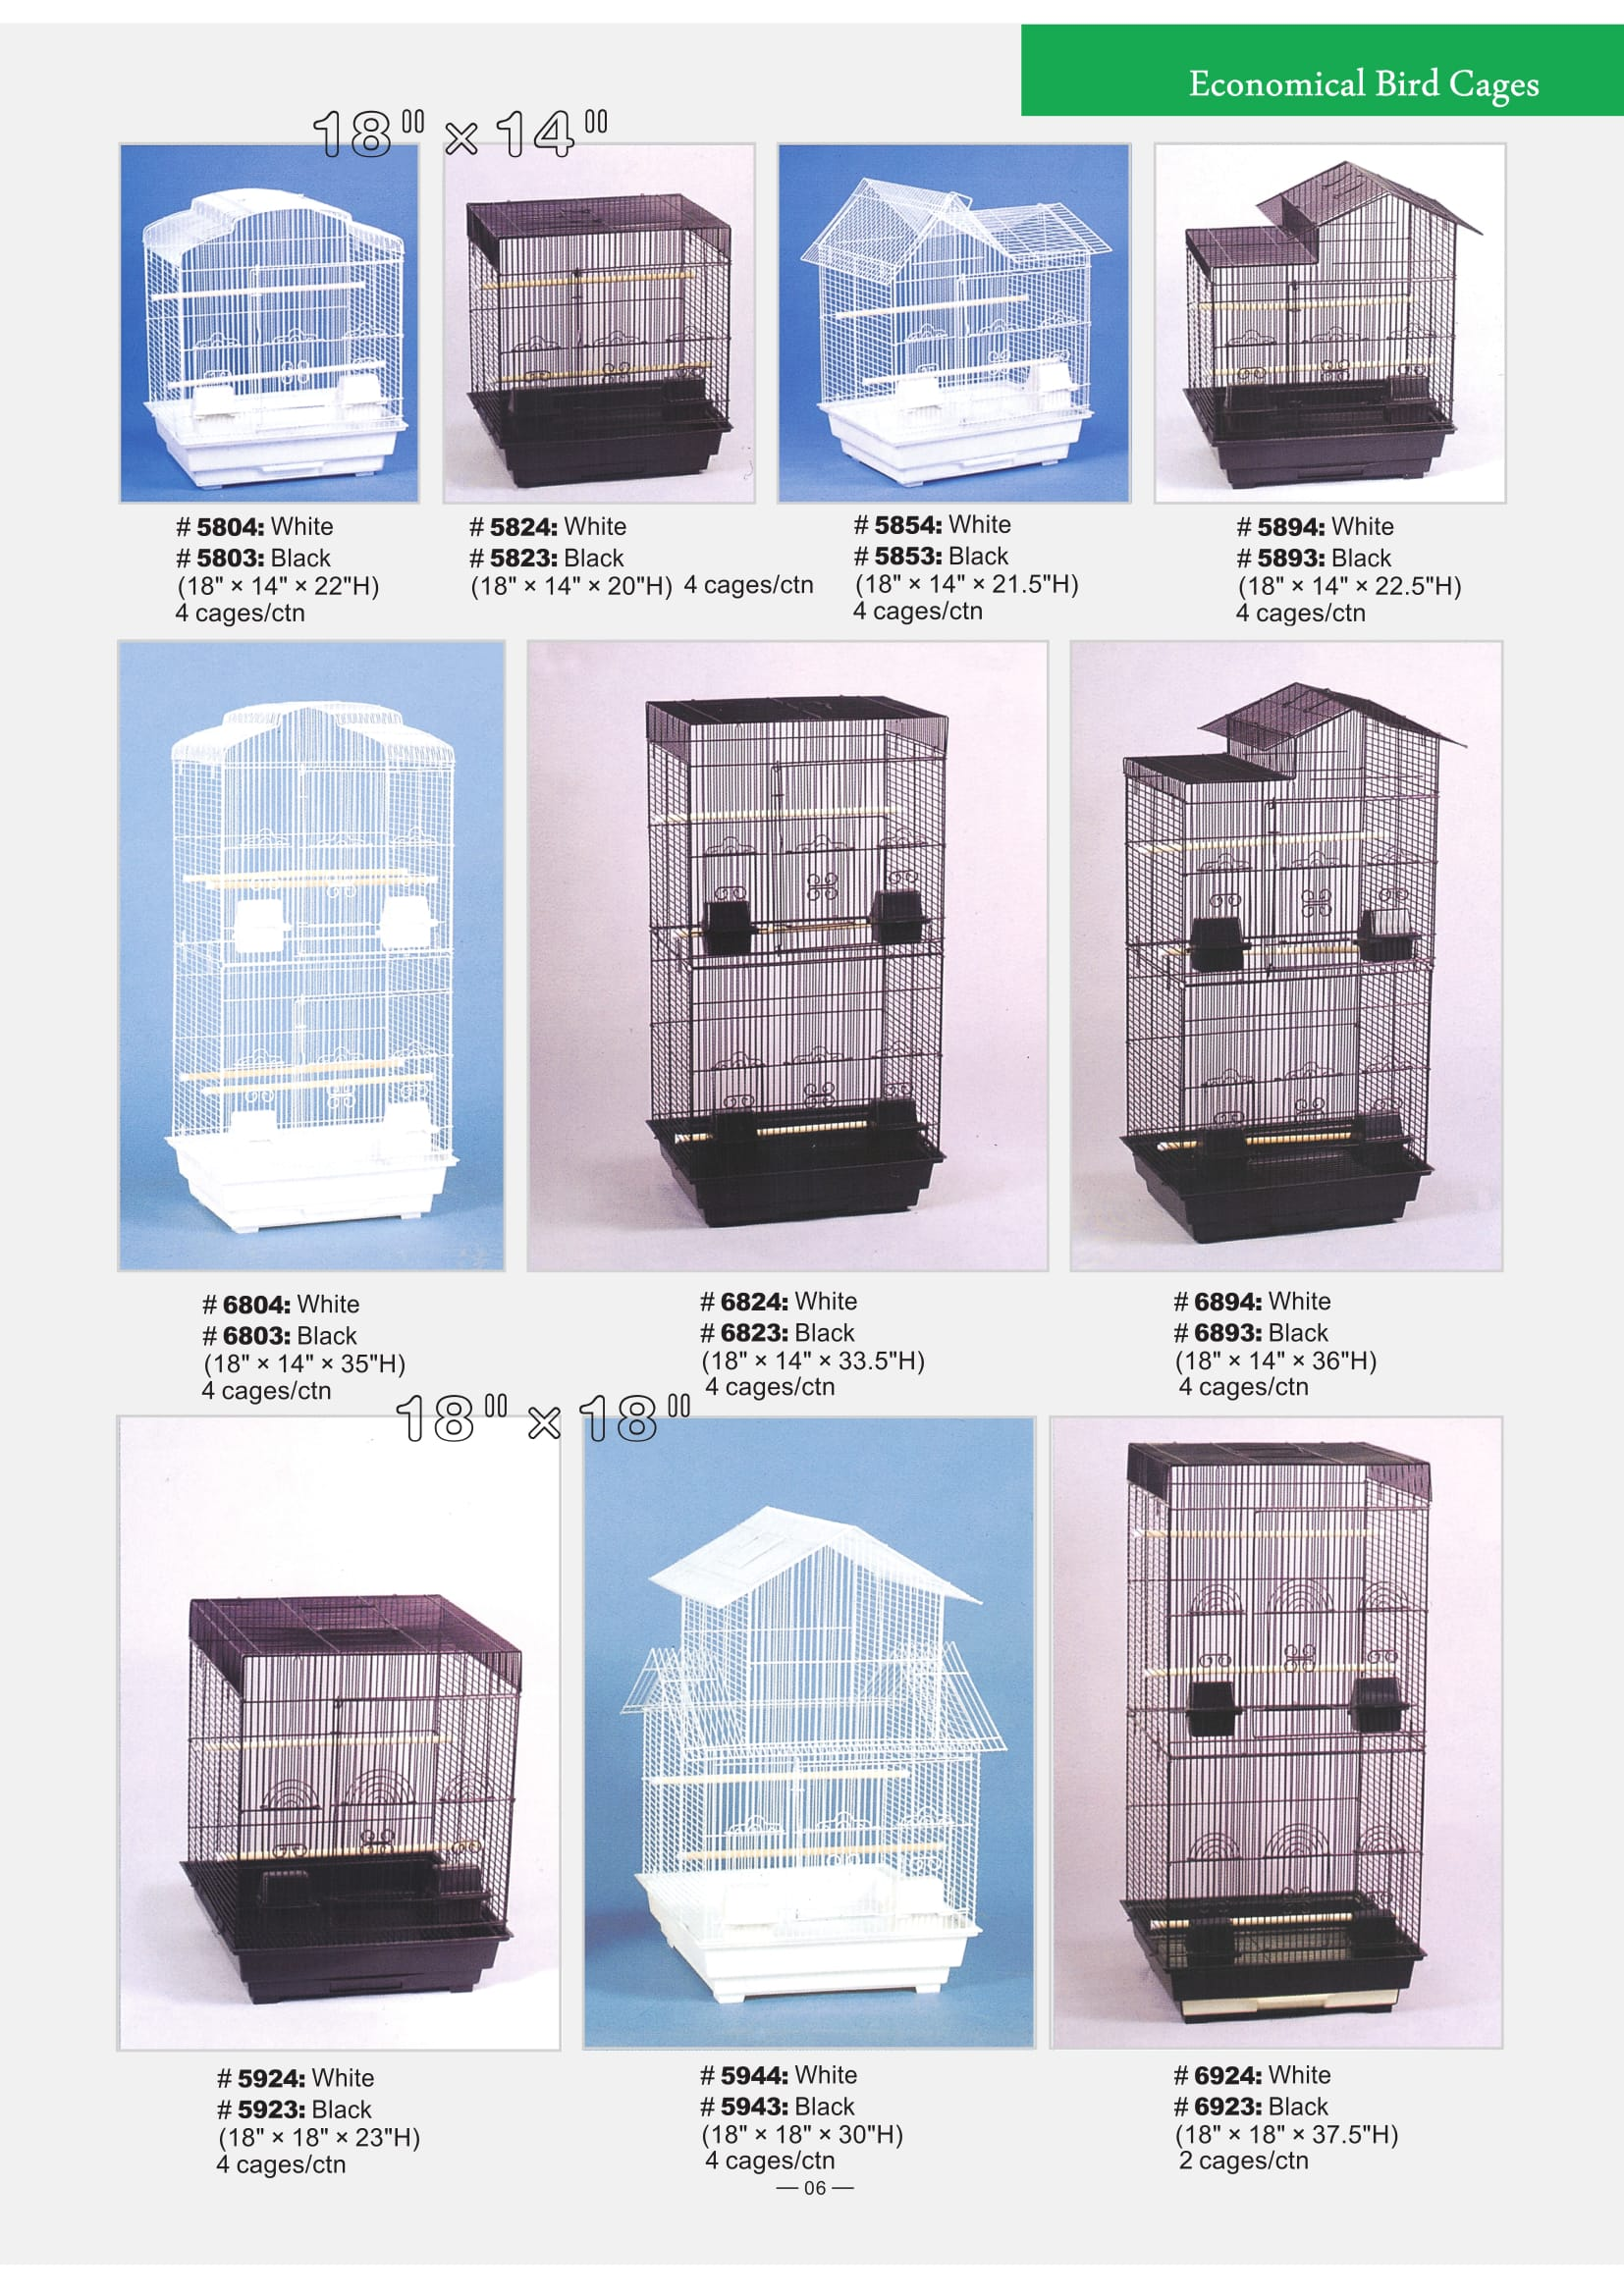 2. Economical Bird Cages part 2-3